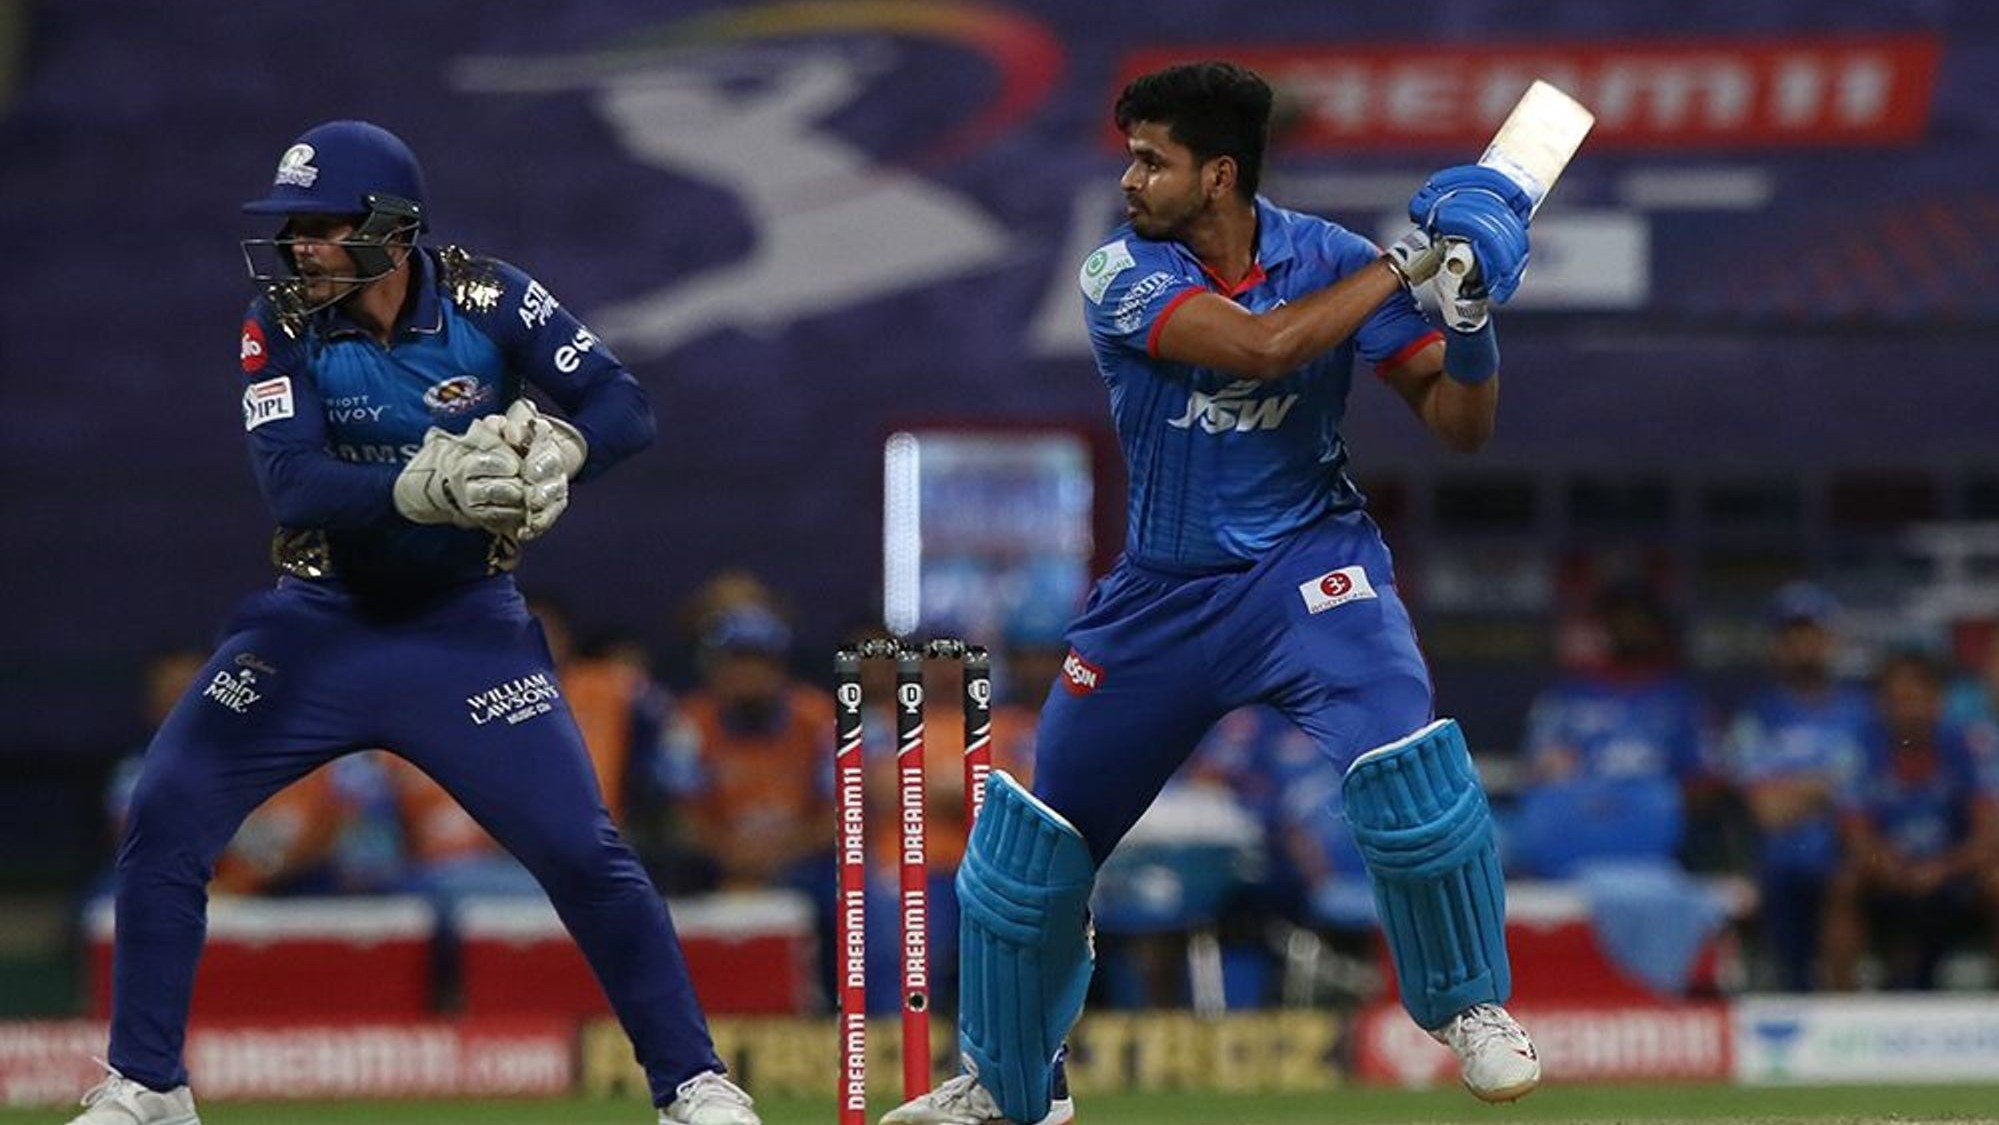 IPL 2020: Match 51, DC v MI - Statistical Preview of the Match